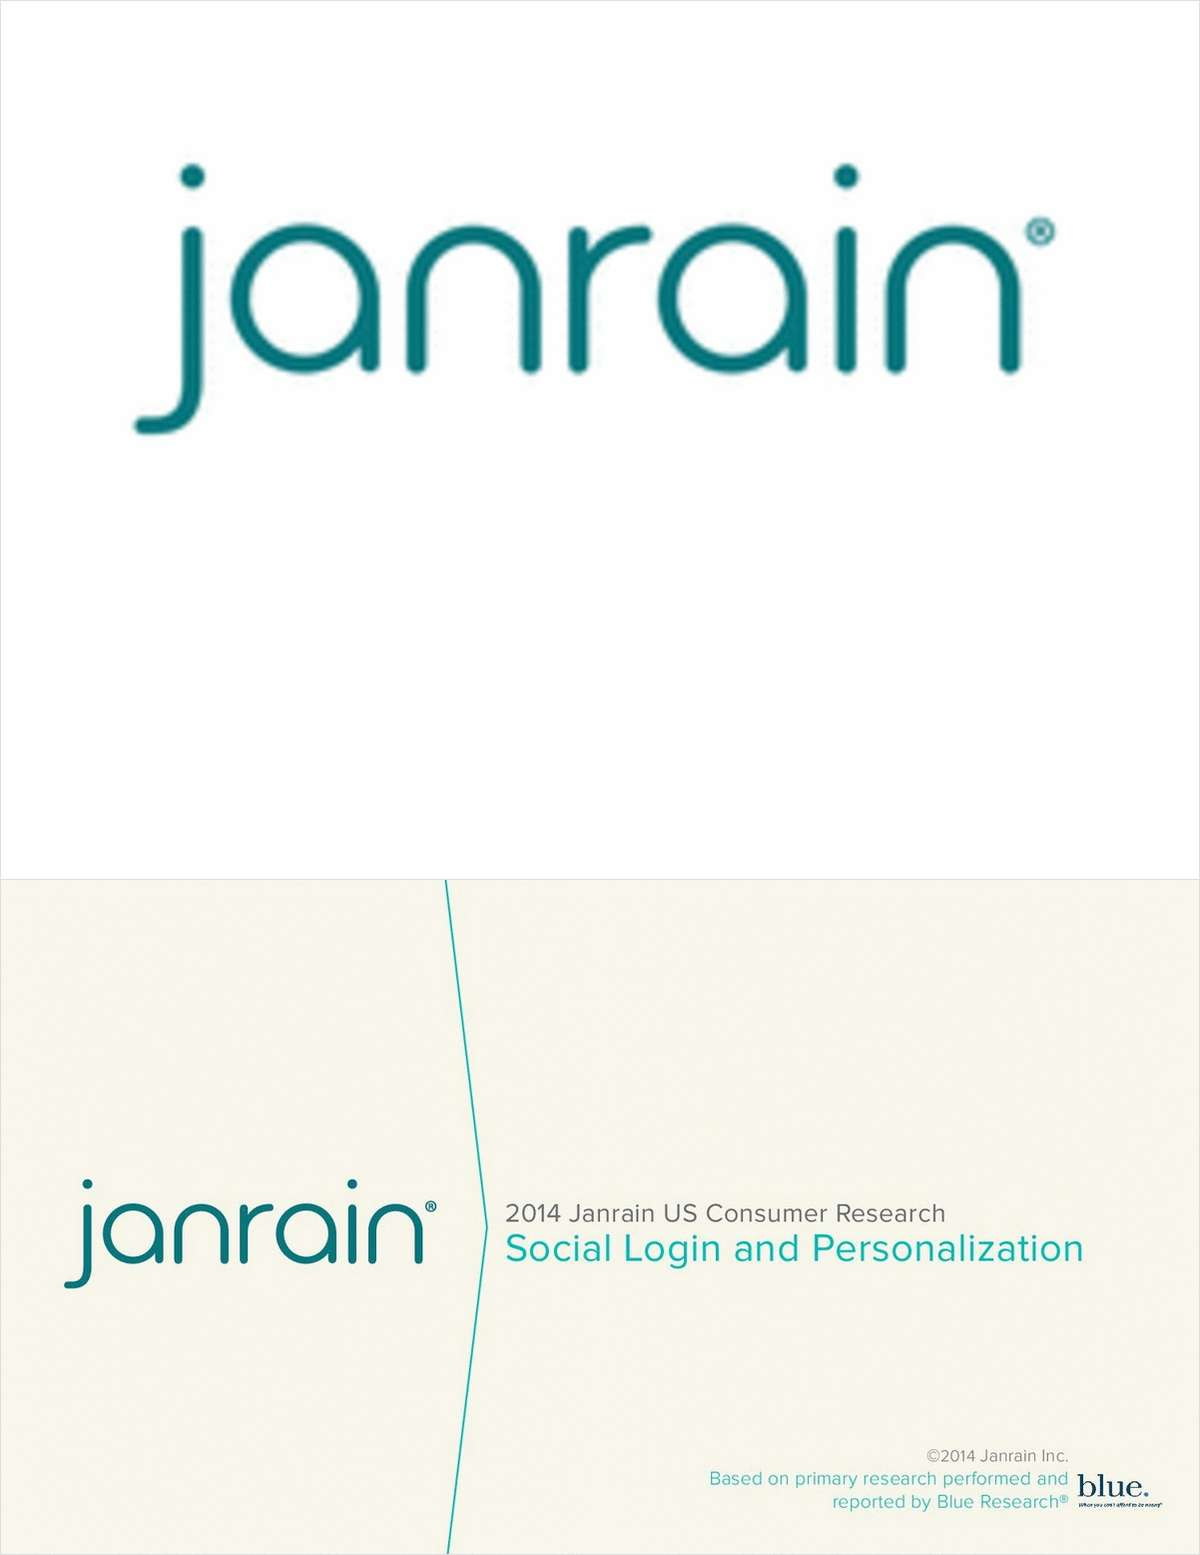 2014 Janrain US Consumer Research: Social Login and Personalization